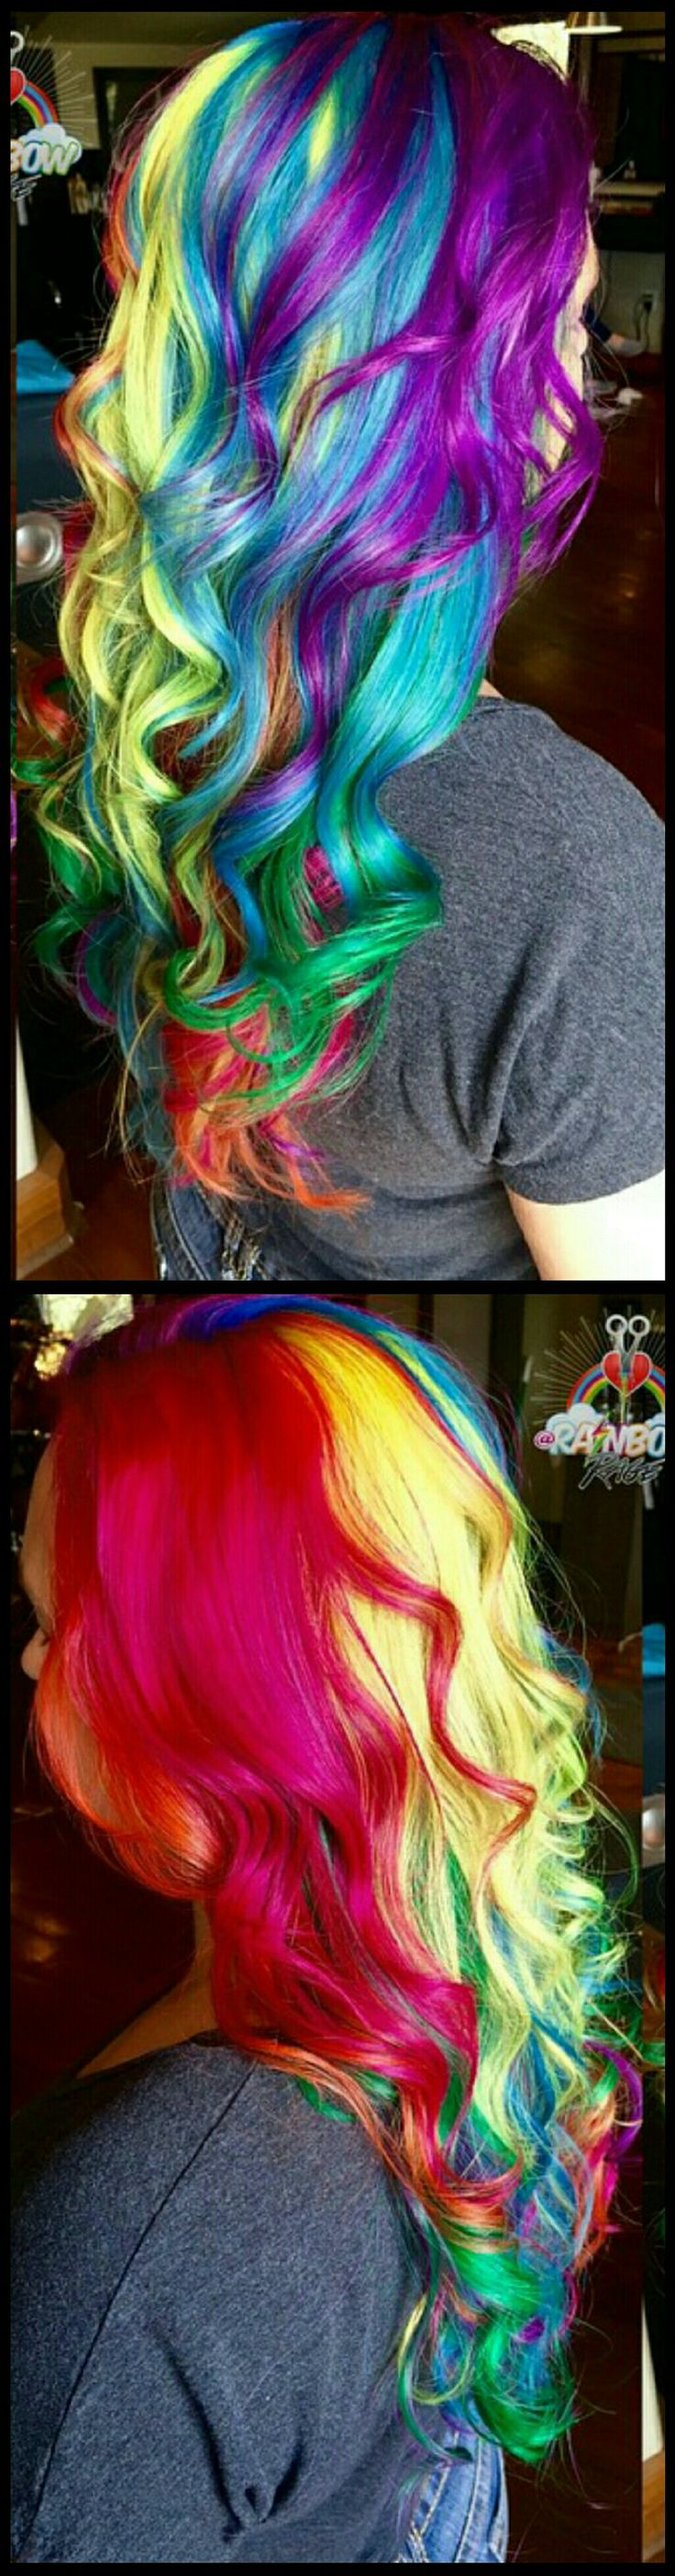 Rainbow dyed hair @rainbowrage